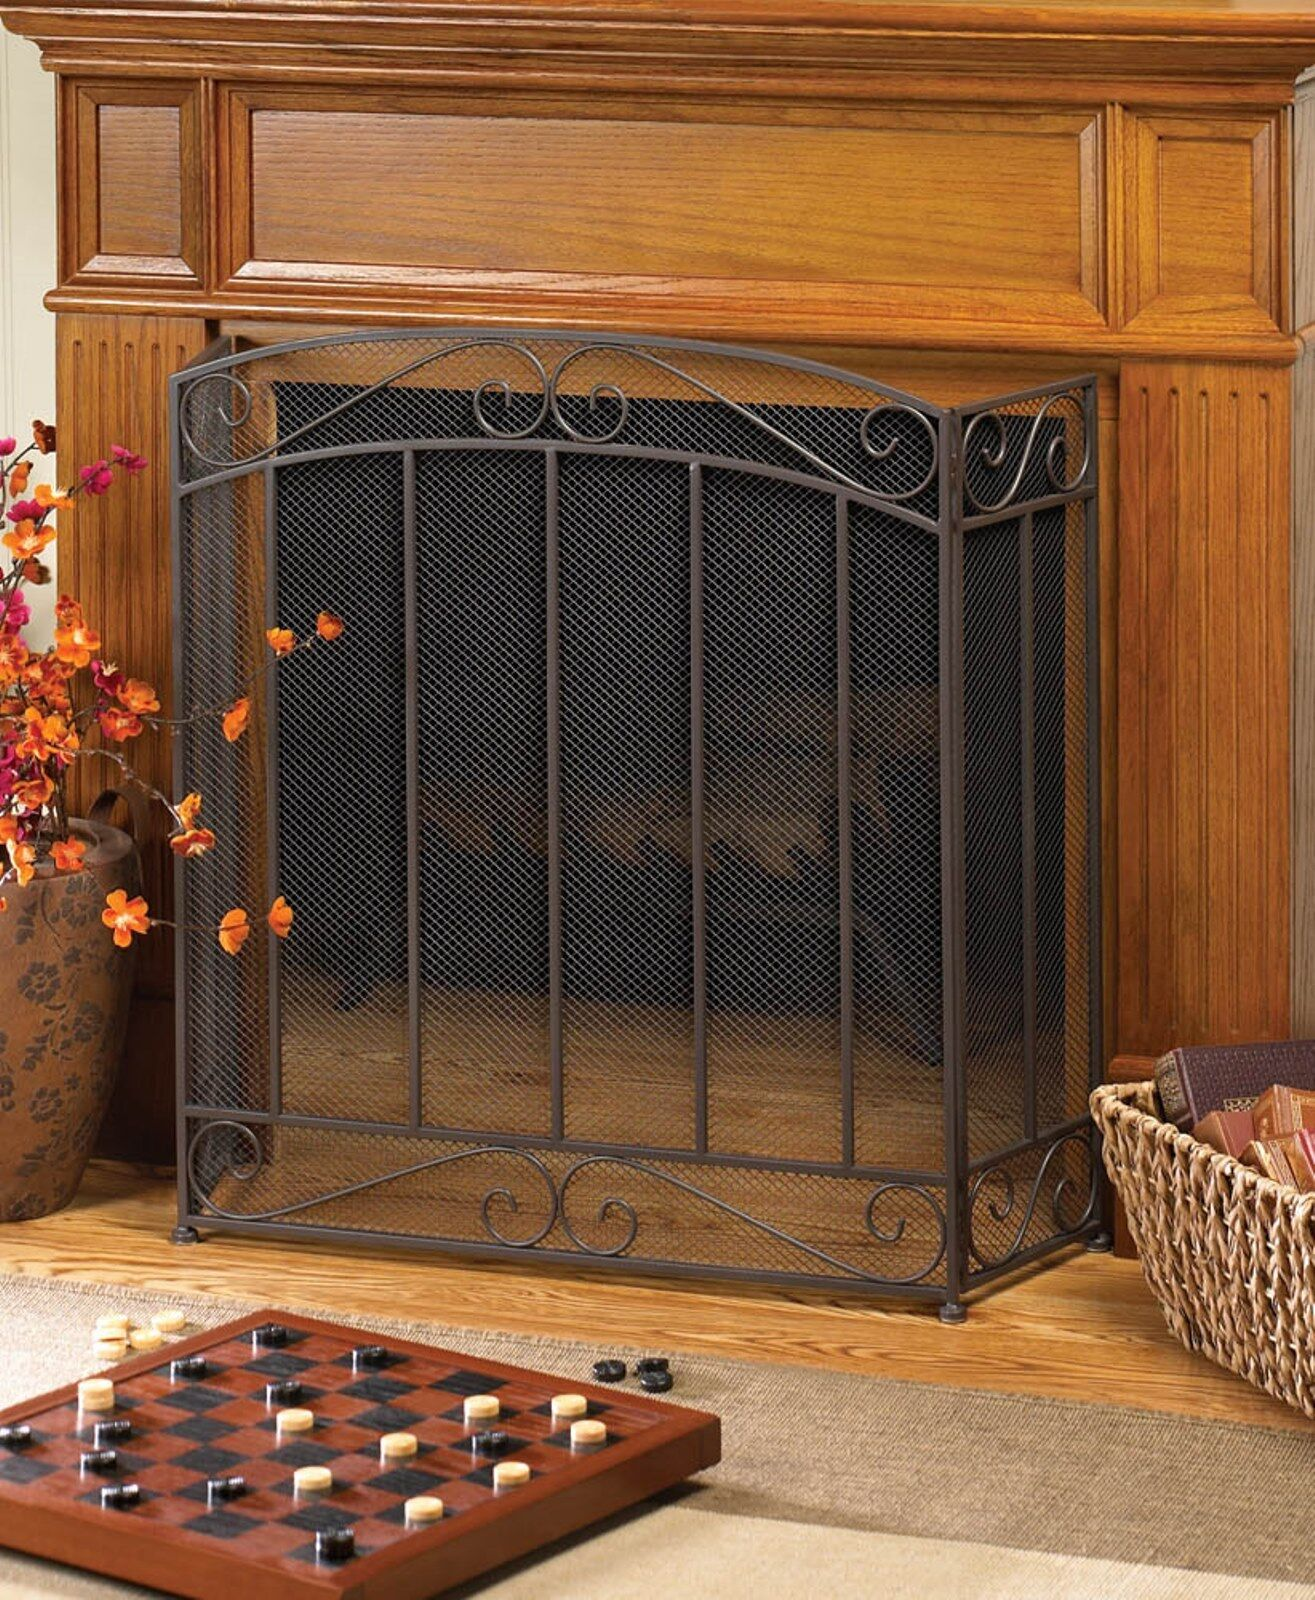 VERDUGO GIFT CO Classic Fire Place Screen